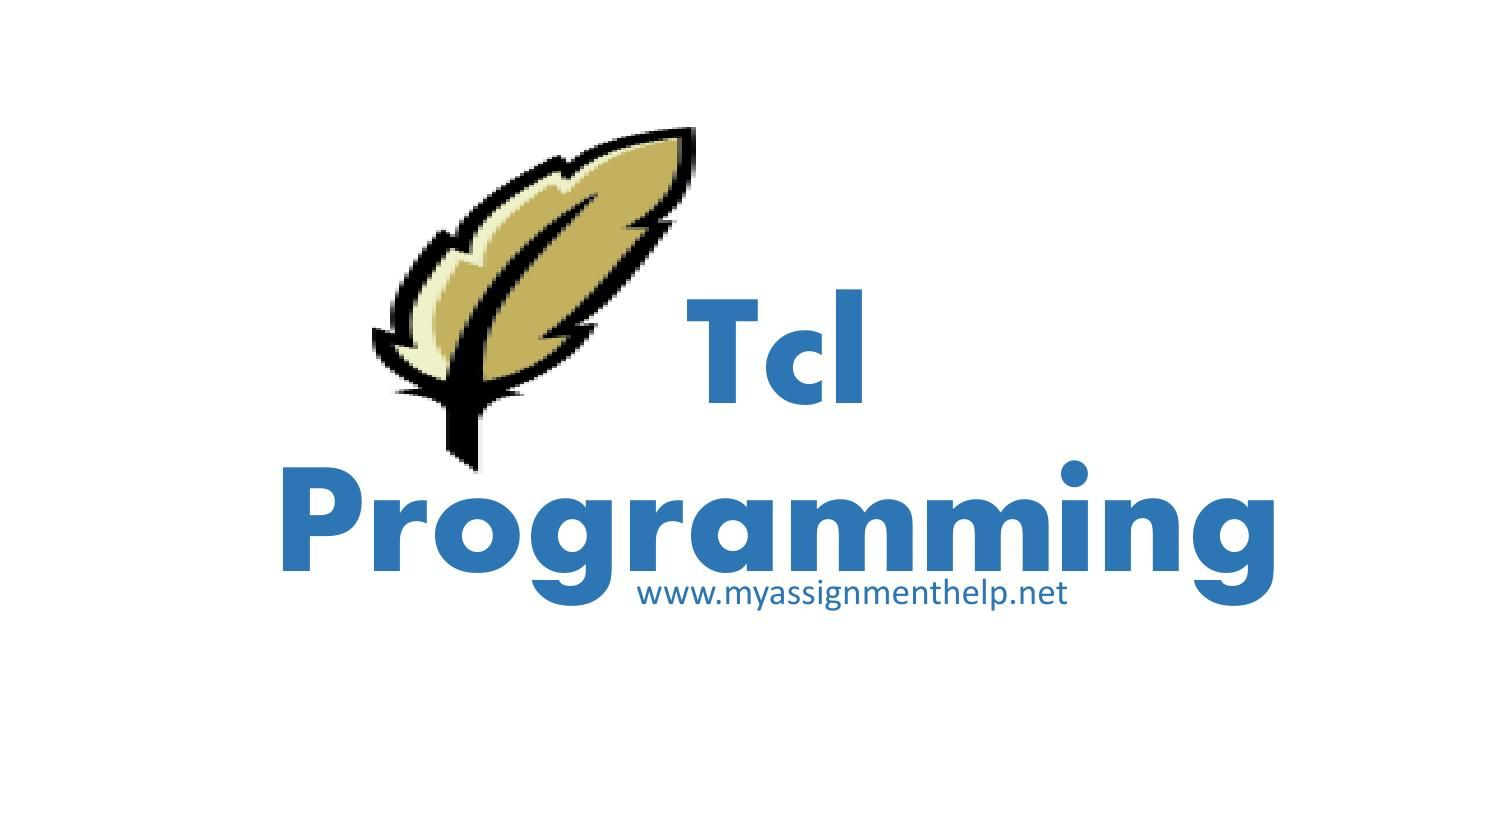 tcl programming assignment help myassignmenthelp net programming tcl programming assignment help myassignmenthelp net